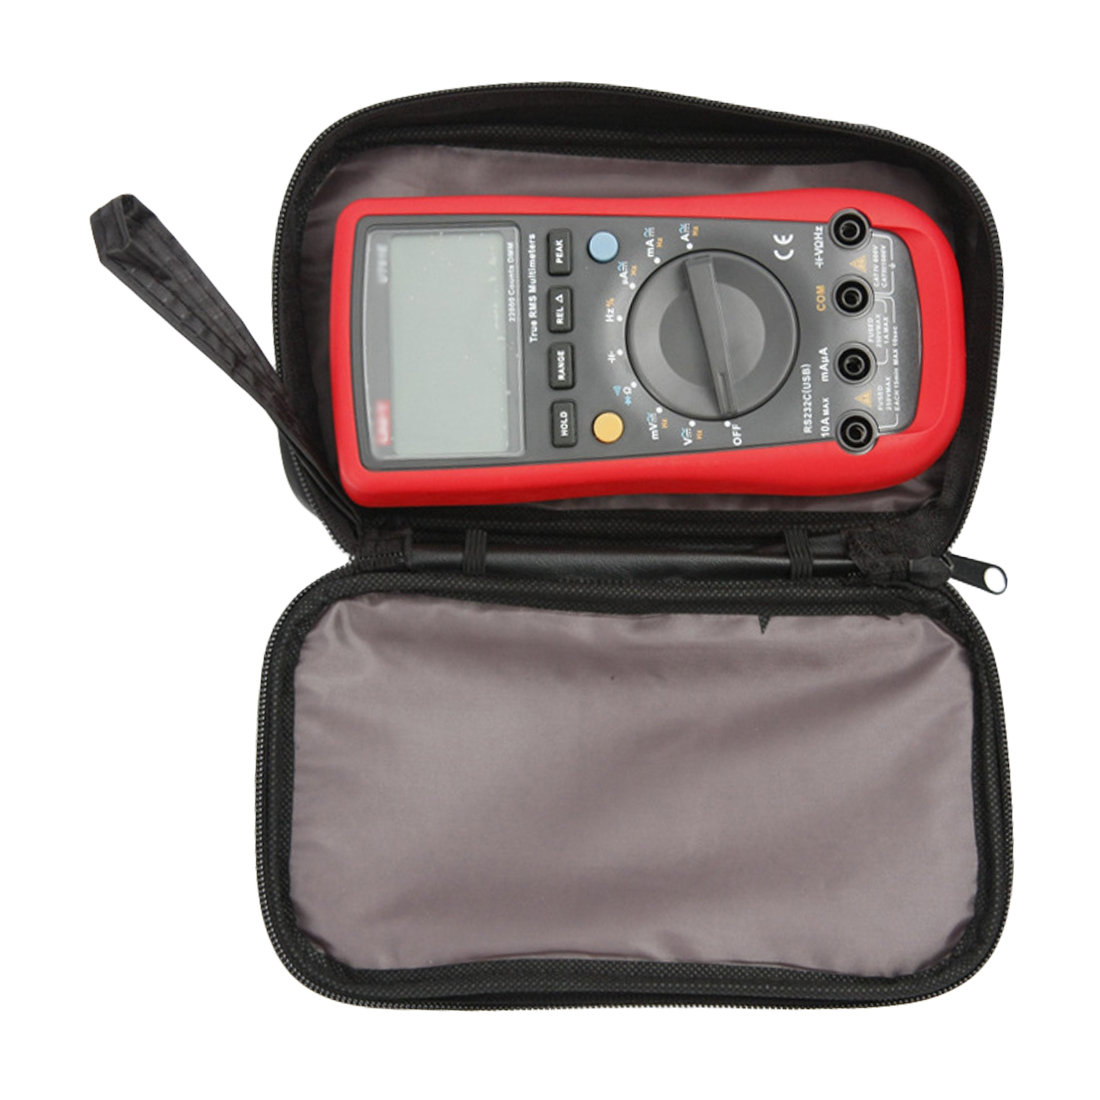 20*12*4cm Waterproof Tools Bag Multimeter Black Canvas Bag For UT61 Series Digital Multimeter Cloth Durable